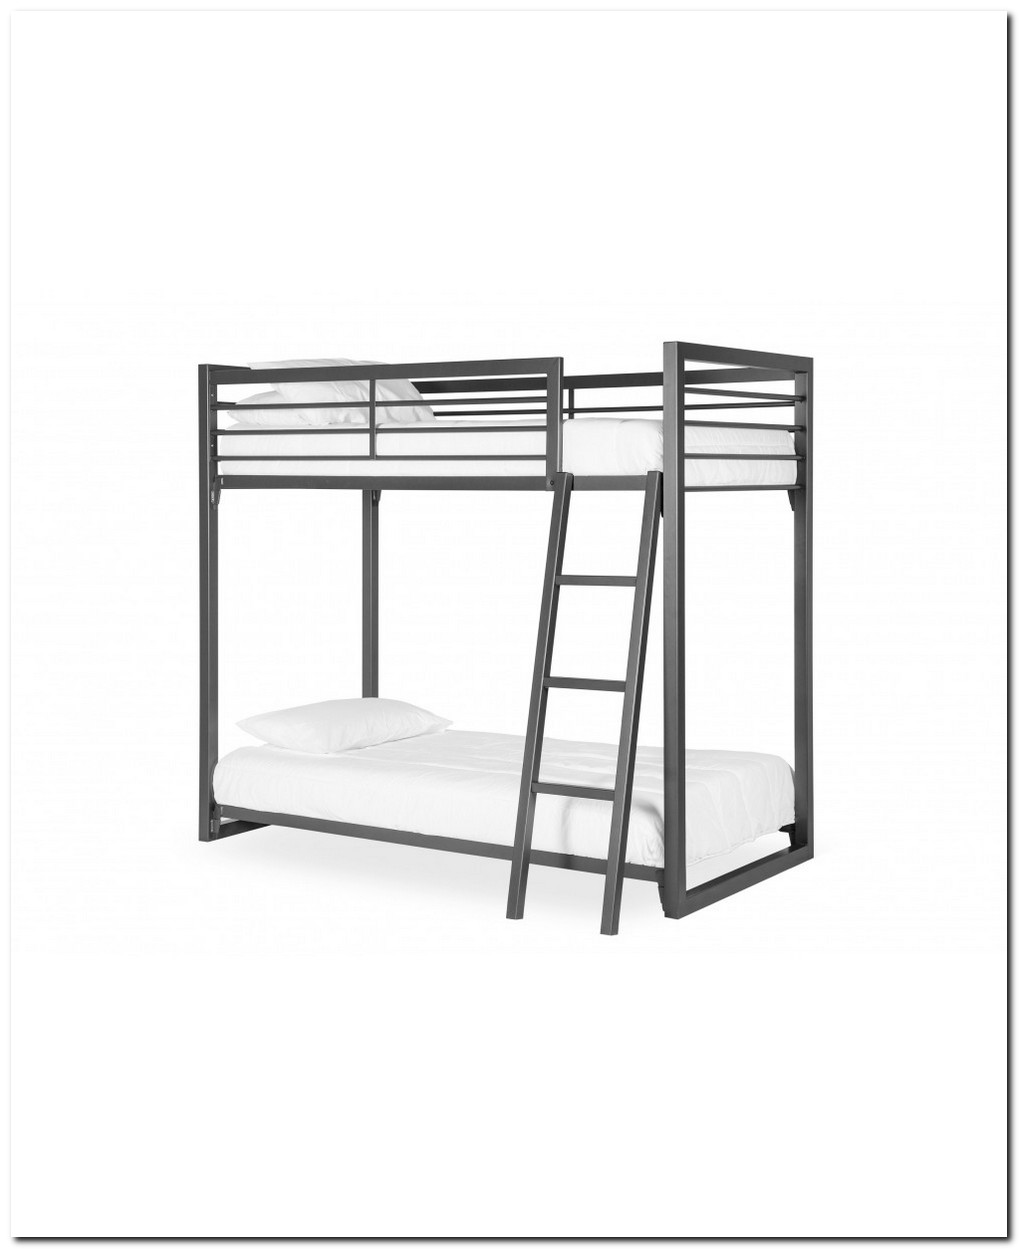 Beds for children choosing bunk beds for kids 28